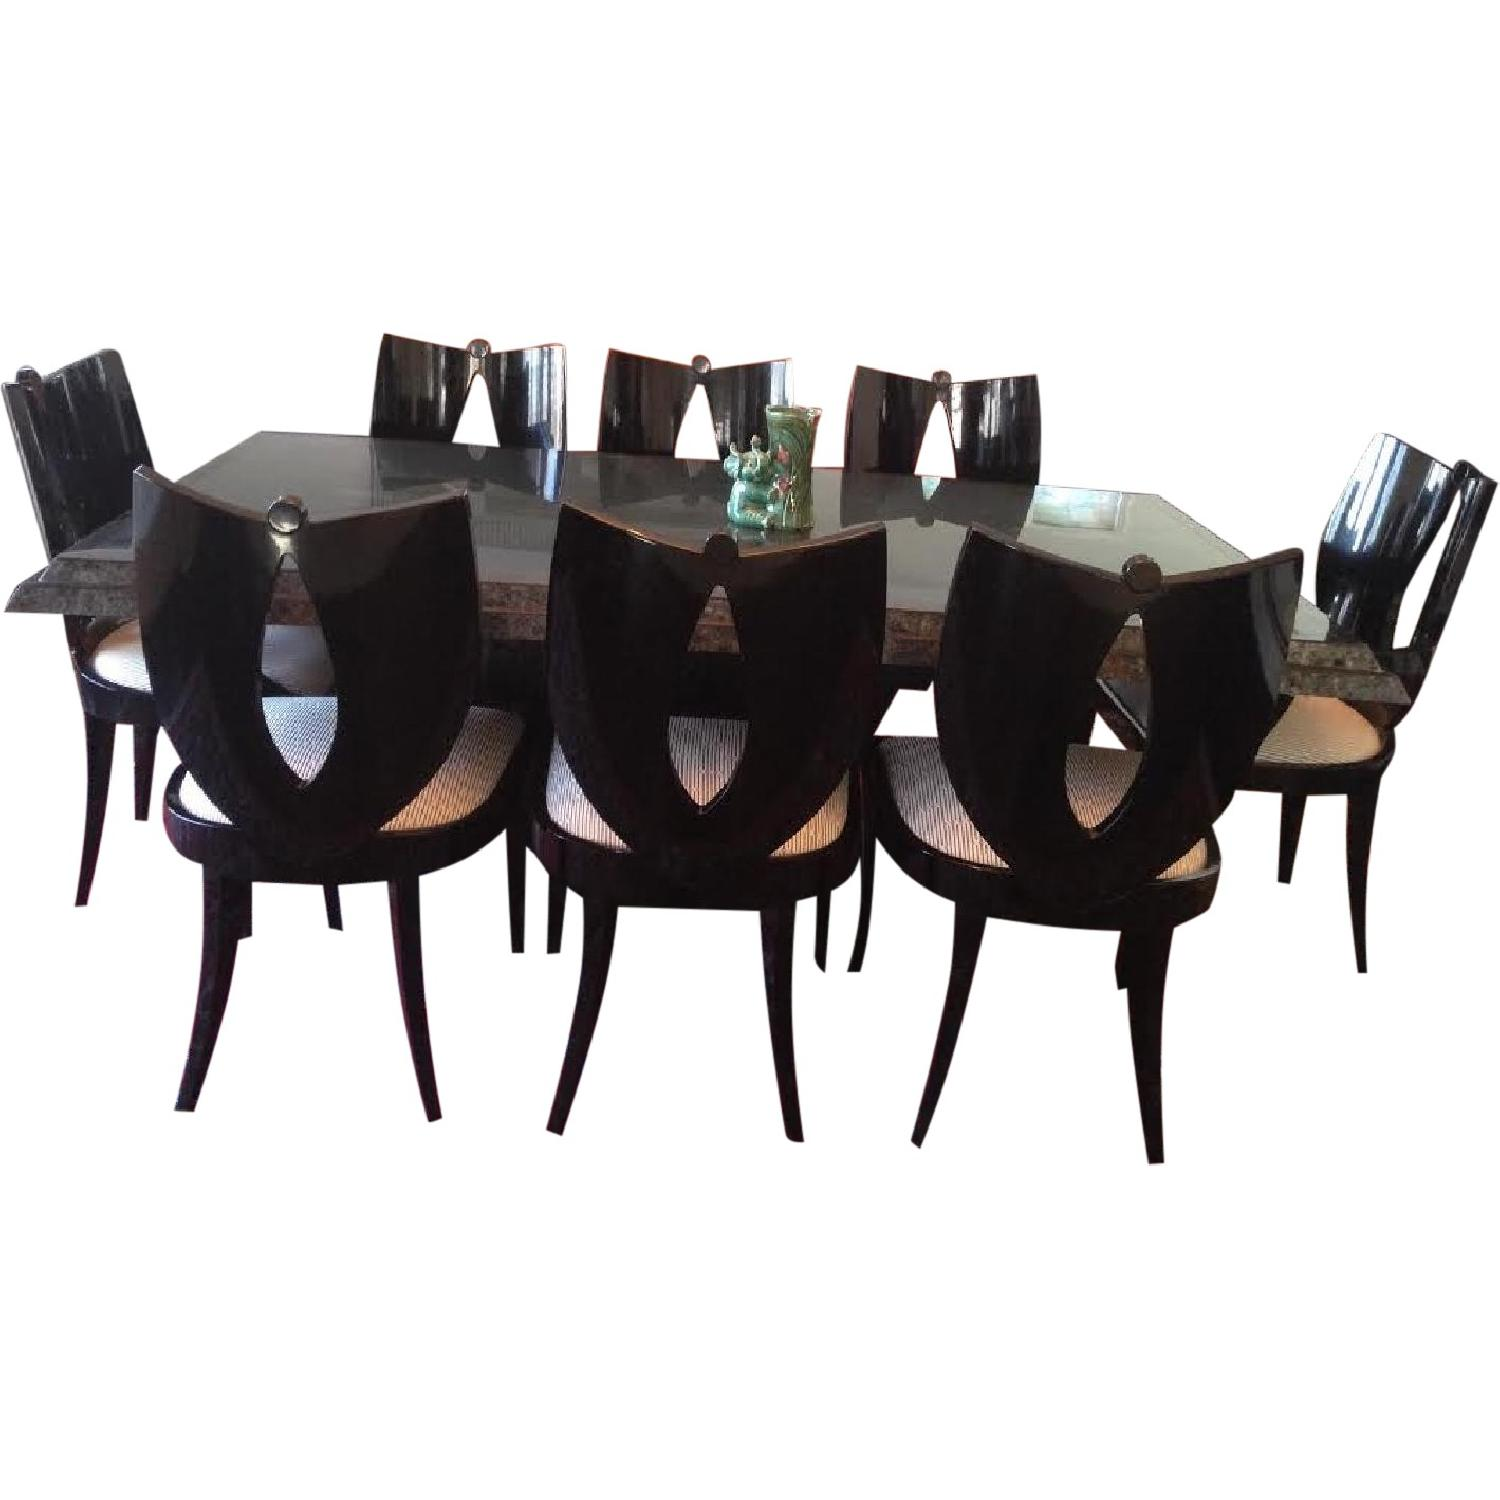 Used 10 Piece Dining Room Set For Sale In NYC